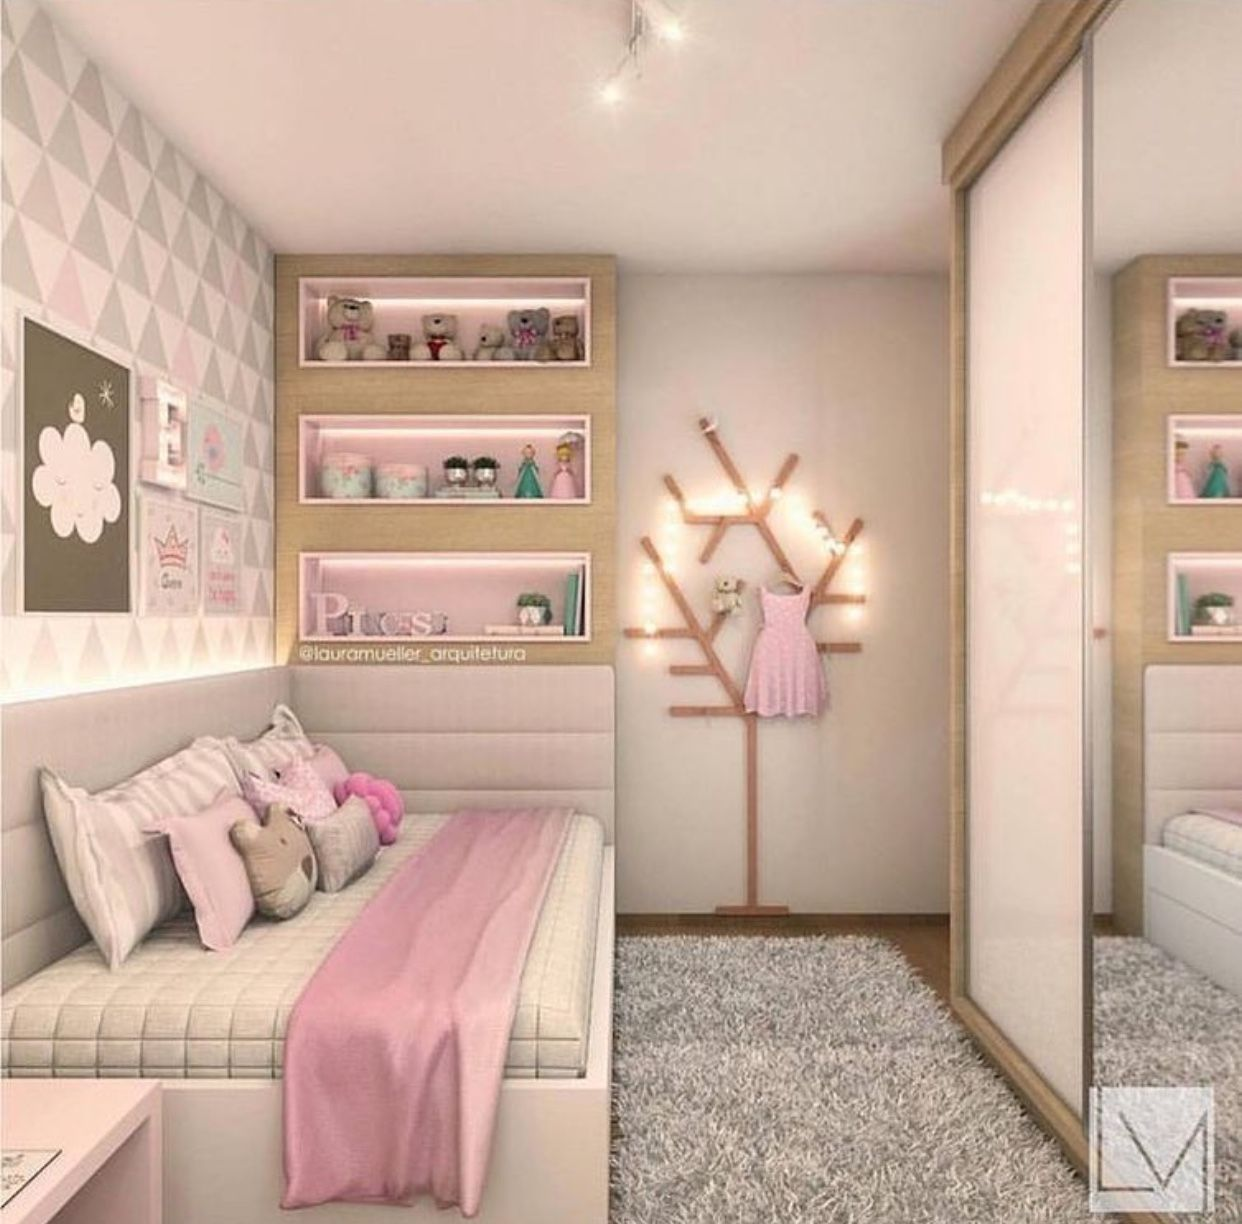 Pin By Lizeth On Room Decor